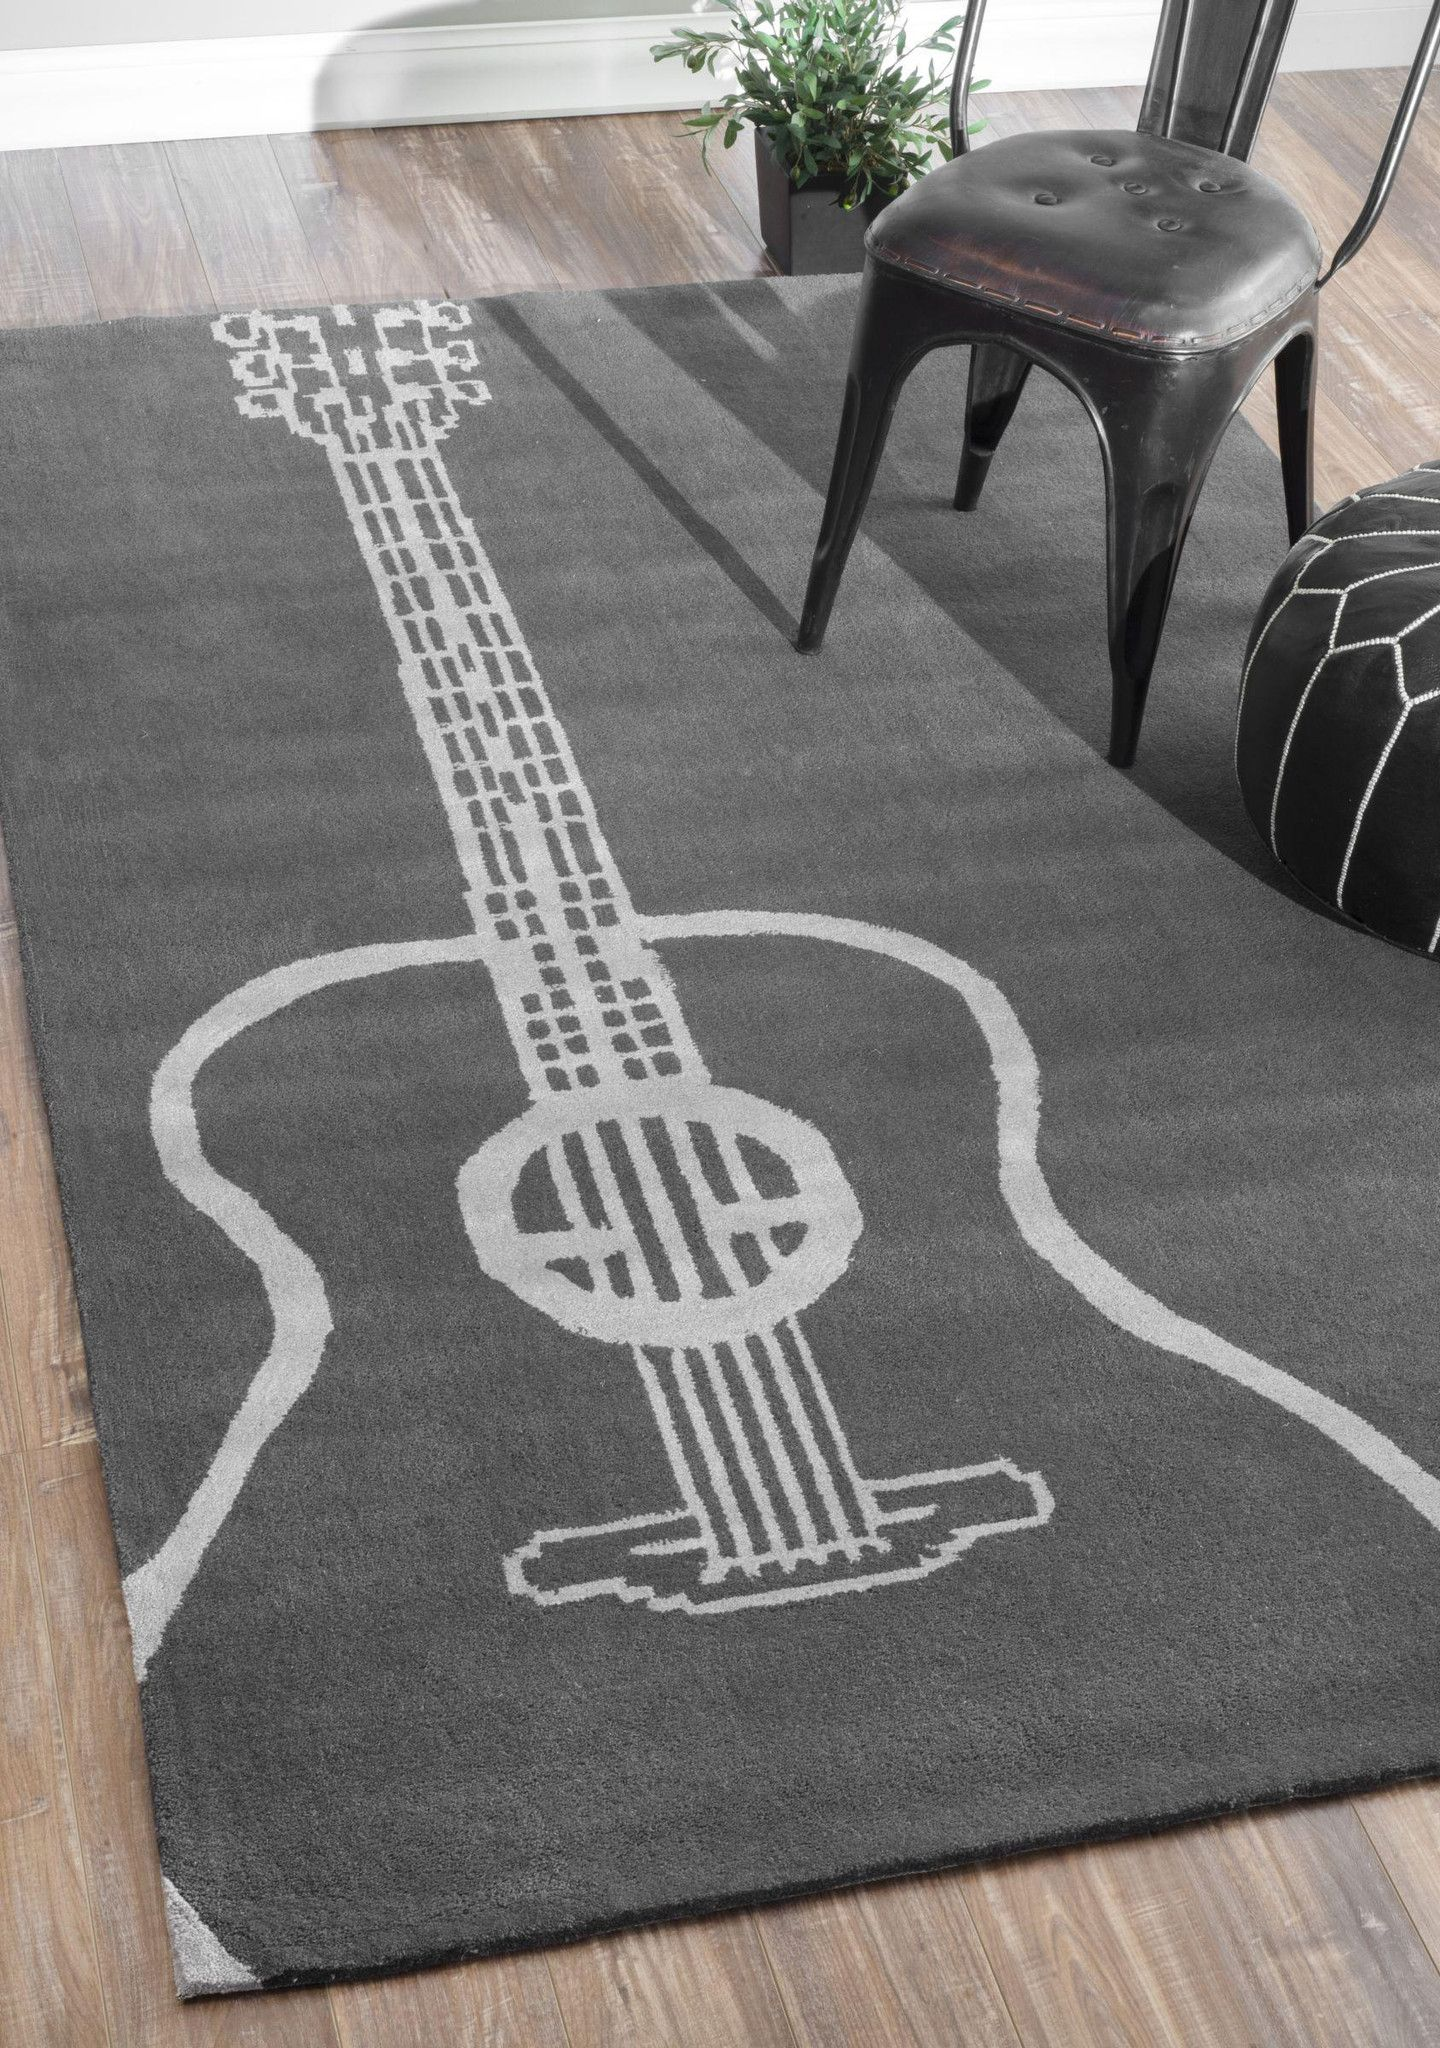 Your Large Guitar Rug In Gray Here Complete Music Themed Child S Room With The This Fun And Modern Is Perfect Addition